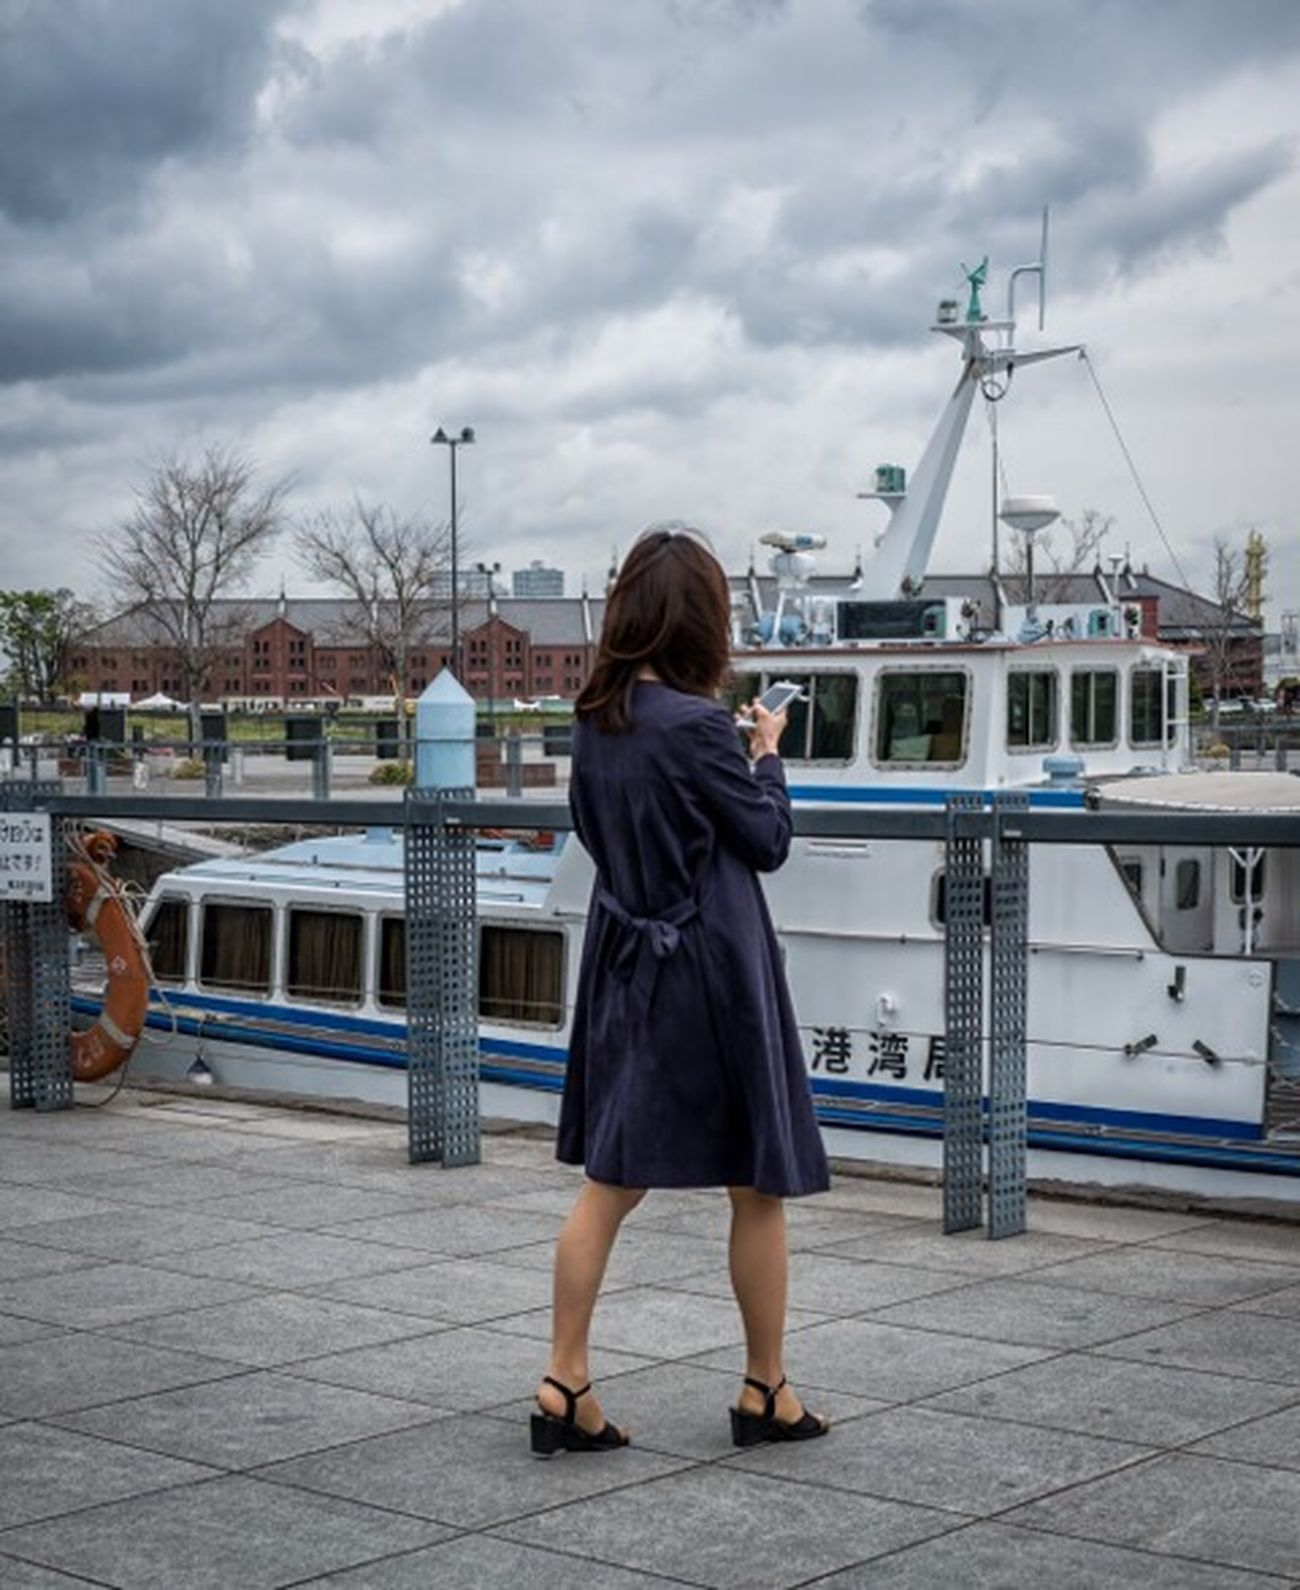 Stormy Times Japan Japanese  Japan Photography Yokohama Street Street Fashion Street Style Streetphotography Colorphotography Fashion Style Urban City People Candid Woman Clouds Boat Xpro2 Fujixpro2 FujifilmXPro2 Xf35mmf2 Cooljapan